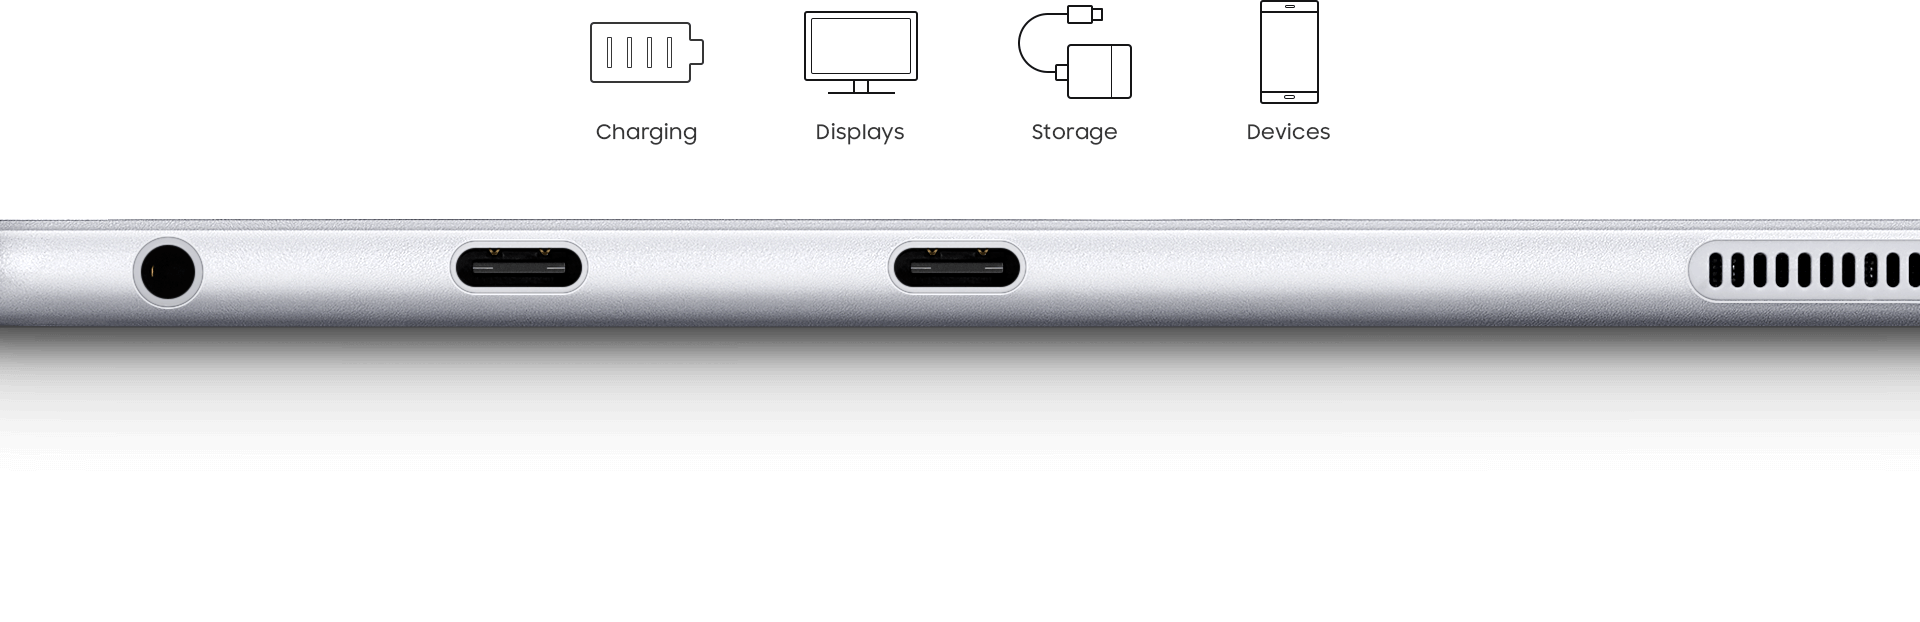 An image showing the side of a Galaxy Book 12 device, displaying its earphone and USB-C ports. At the bottom of the image, USB-C is written in large text. On the top are charging, displays, storage and devices icons.